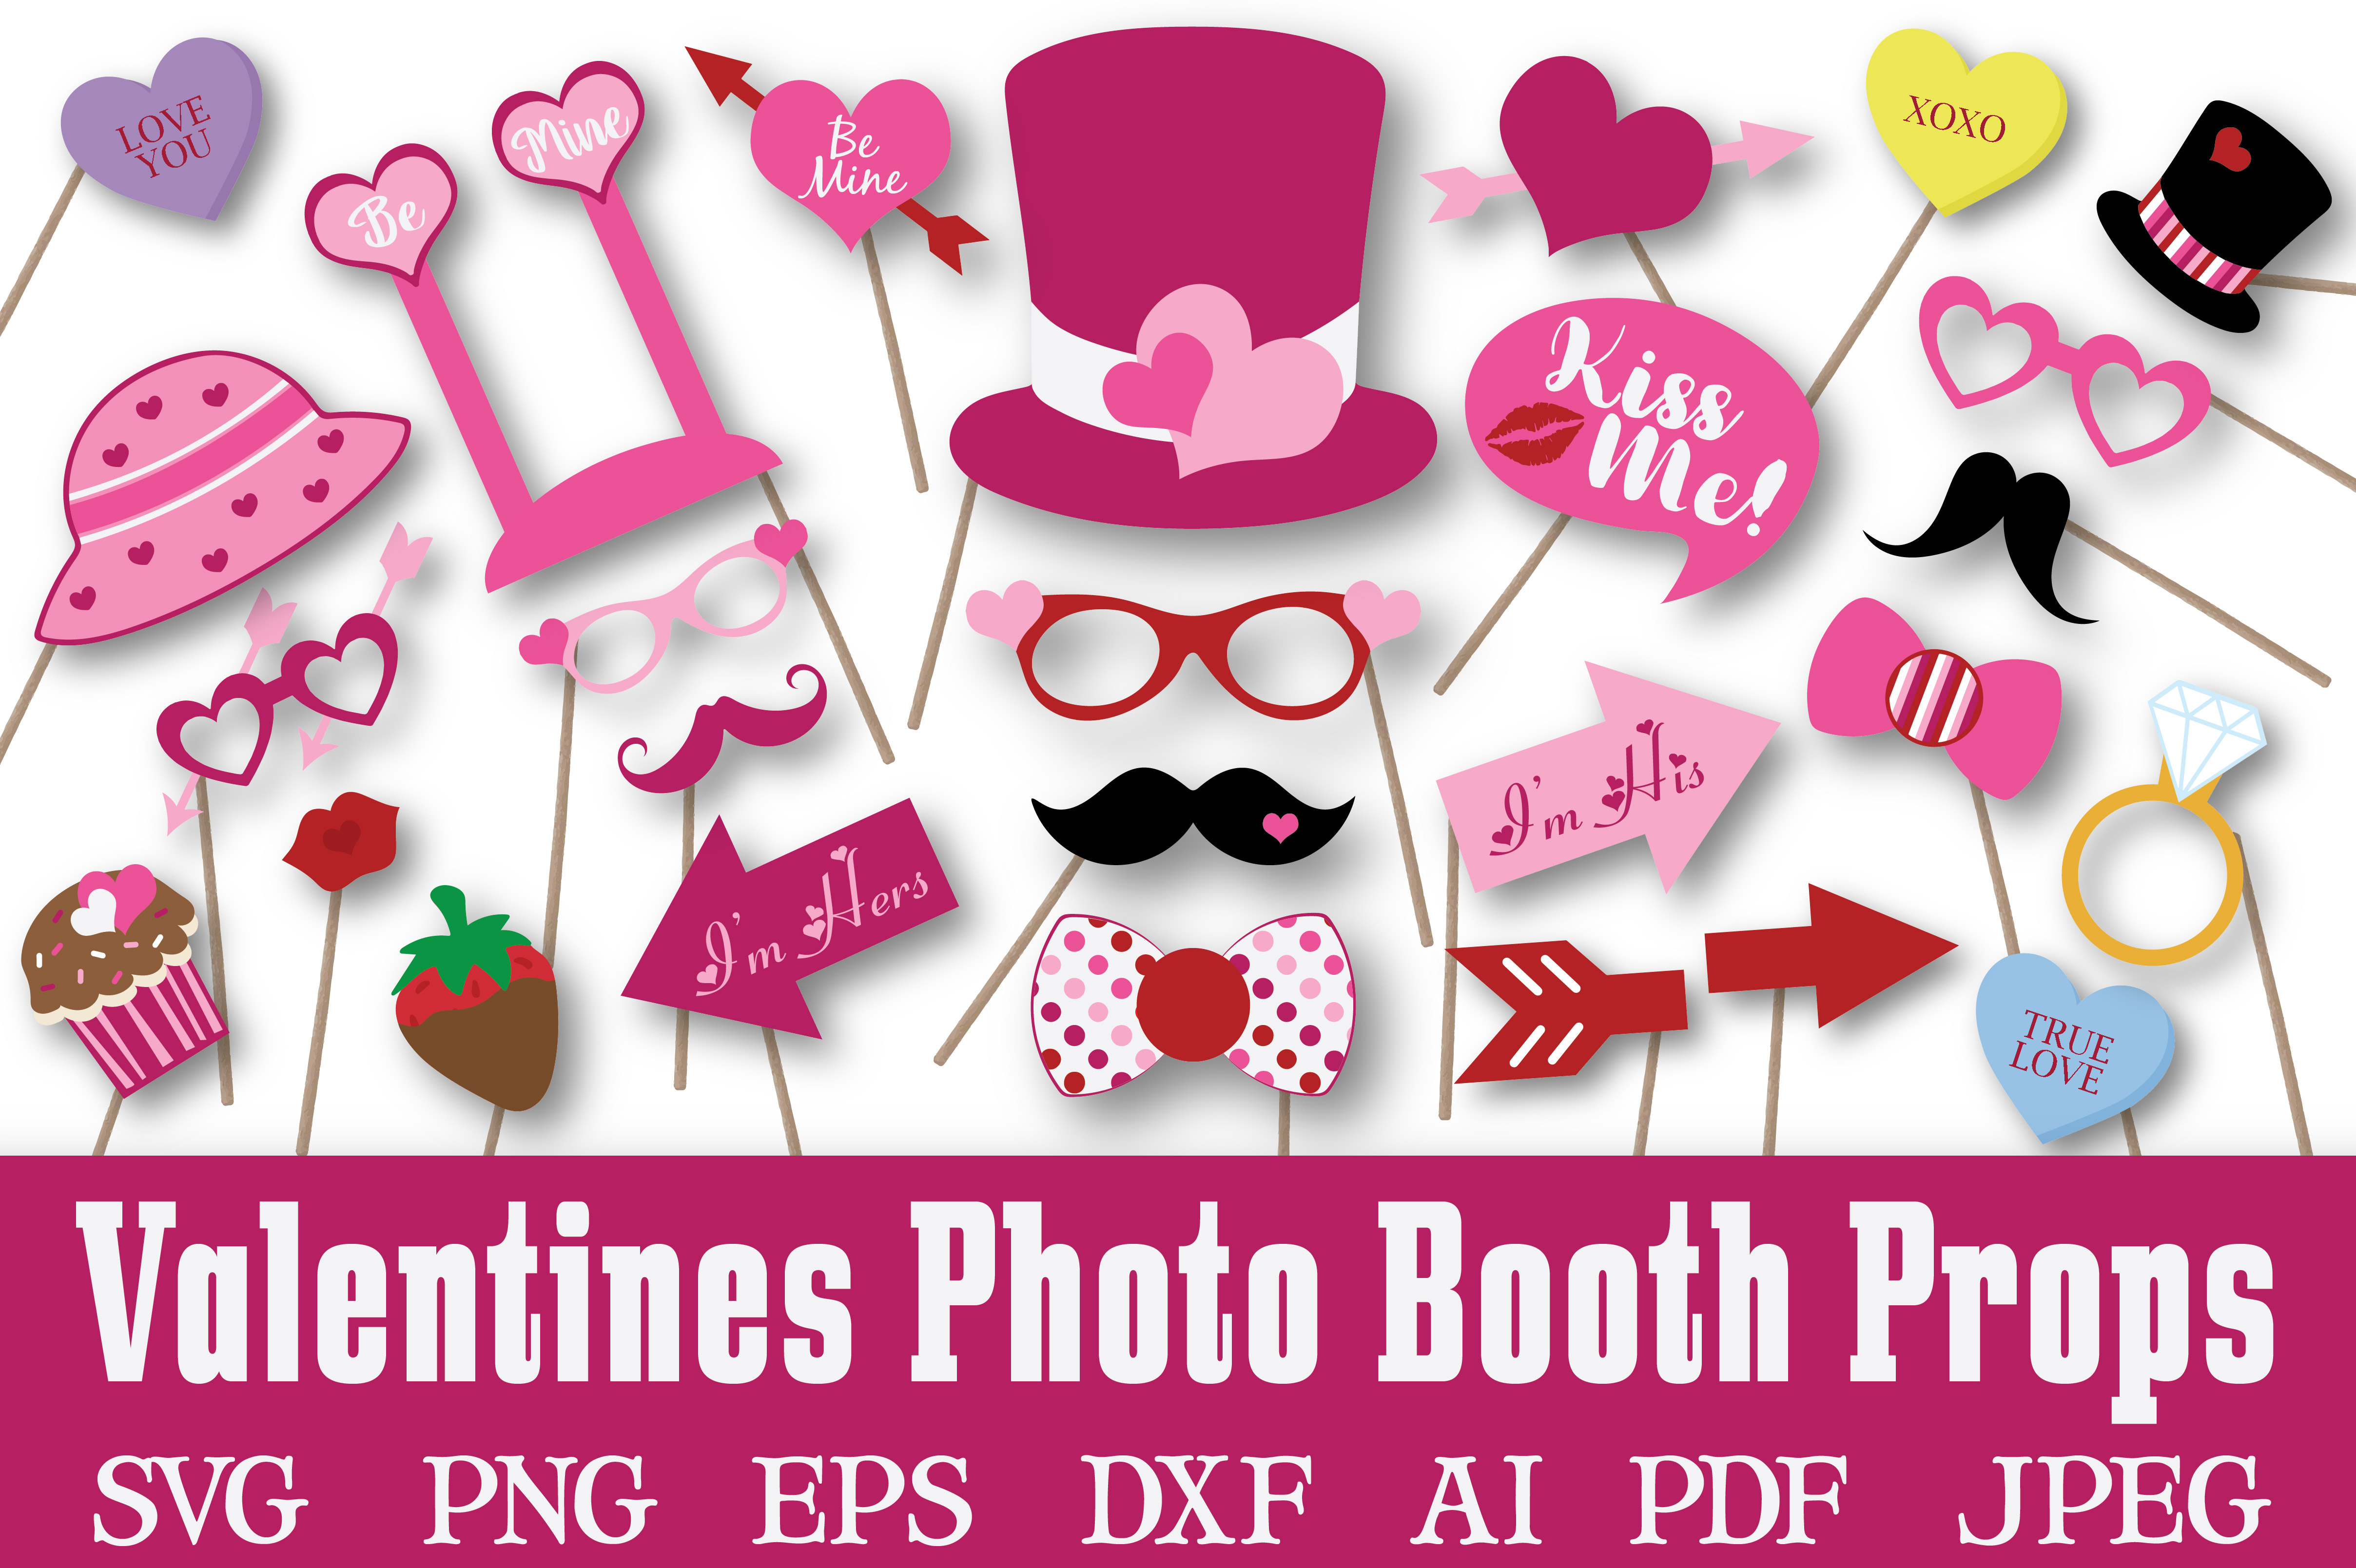 Valentines Day Photo Booth Props - SVG Cut File - DXF - EPS example image 1